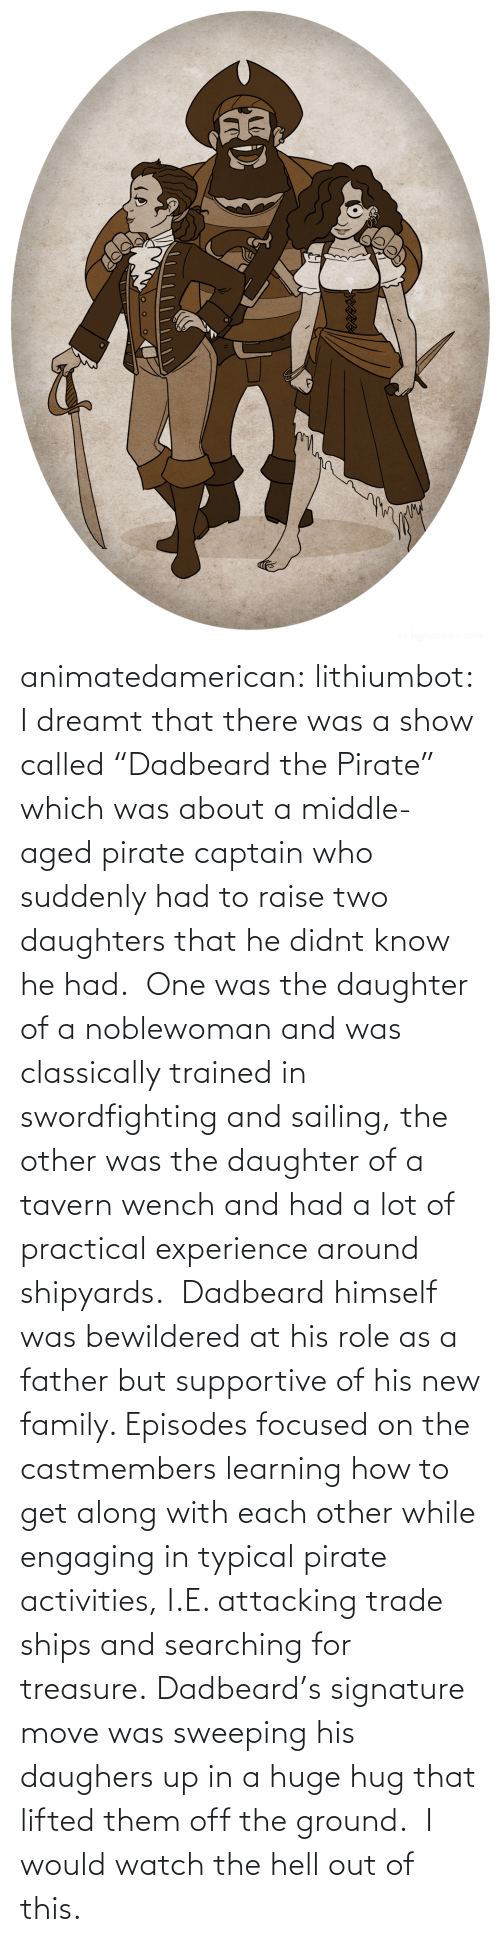 "dreamt: animatedamerican: lithiumbot:  I dreamt that there was a show called ""Dadbeard the Pirate"" which was about a middle-aged pirate captain who suddenly had to raise two daughters that he didnt know he had.  One was the daughter of a noblewoman and was classically trained in swordfighting and sailing, the other was the daughter of a tavern wench and had a lot of practical experience around shipyards.  Dadbeard himself was bewildered at his role as a father but supportive of his new family. Episodes focused on the castmembers learning how to get along with each other while engaging in typical pirate activities, I.E. attacking trade ships and searching for treasure. Dadbeard's signature move was sweeping his daughers up in a huge hug that lifted them off the ground.   I would watch the hell out of this."